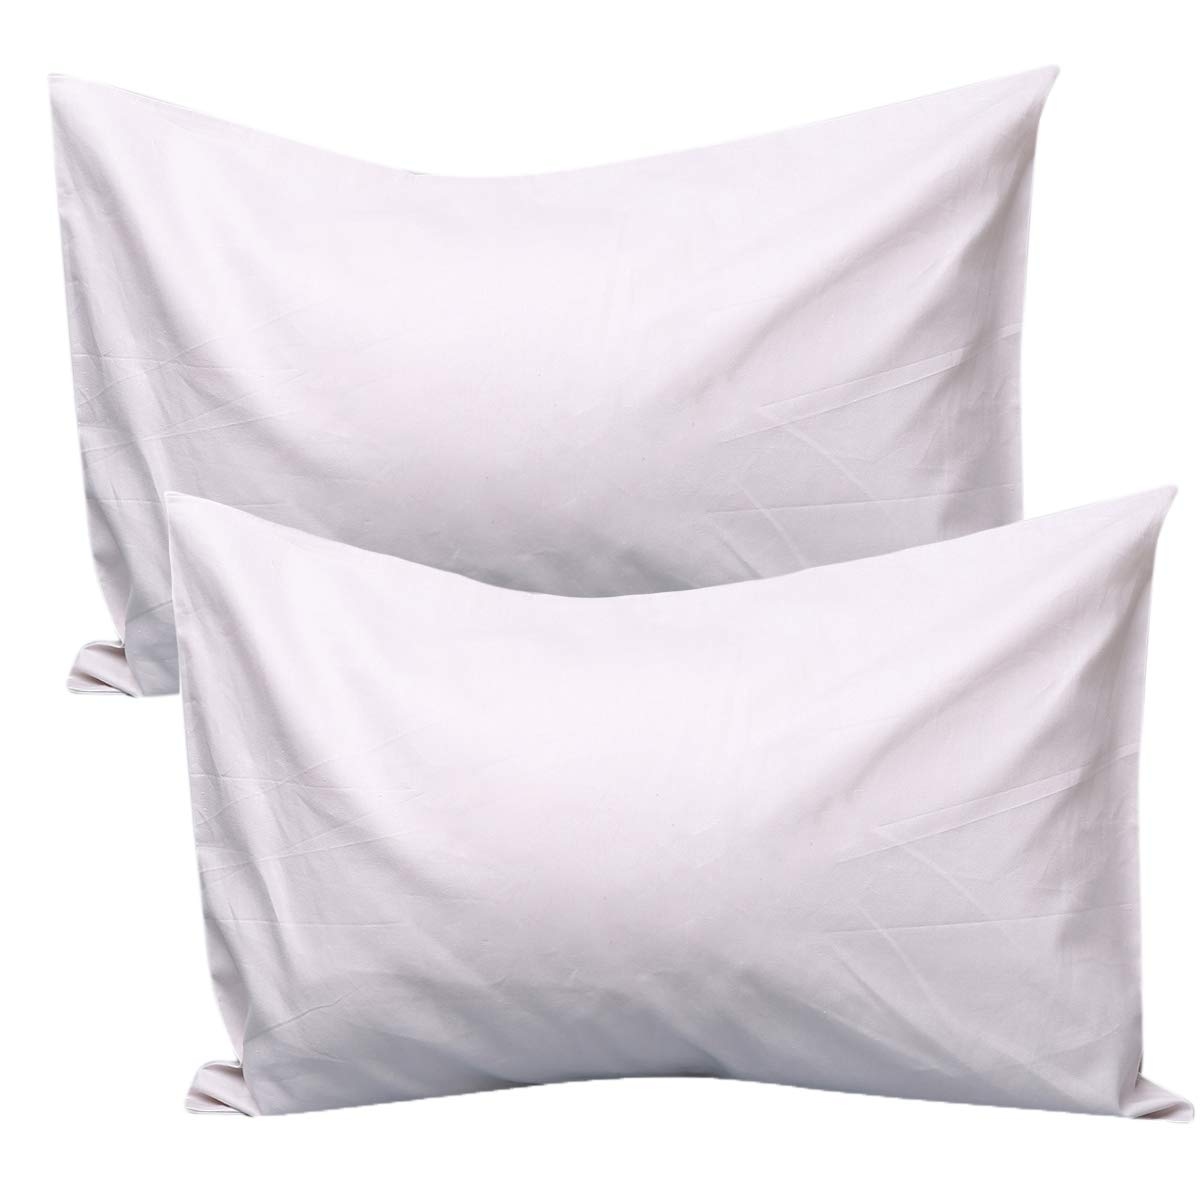 UOMNY Kids Toddler Pillowcases,100/% Cotton Travel Pillow Covers Set of 2 Pack,Pillowslip Case Fits Pillows sizesd 14x 20 for Kids Bedding Pillow Cover Baby Pillow Cases Light Gray